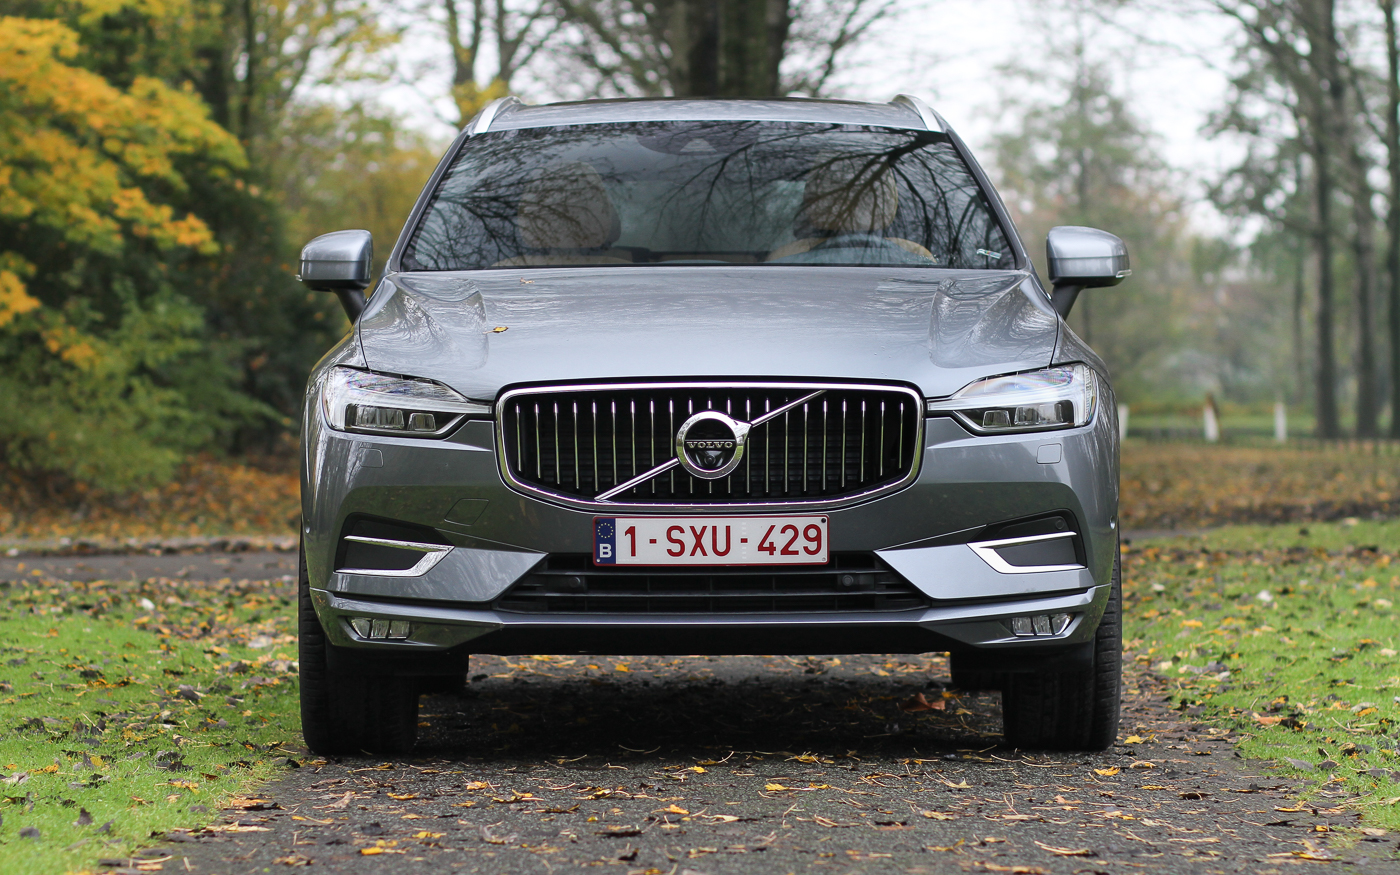 Rijtest Volvo XC60 D4 Inscription